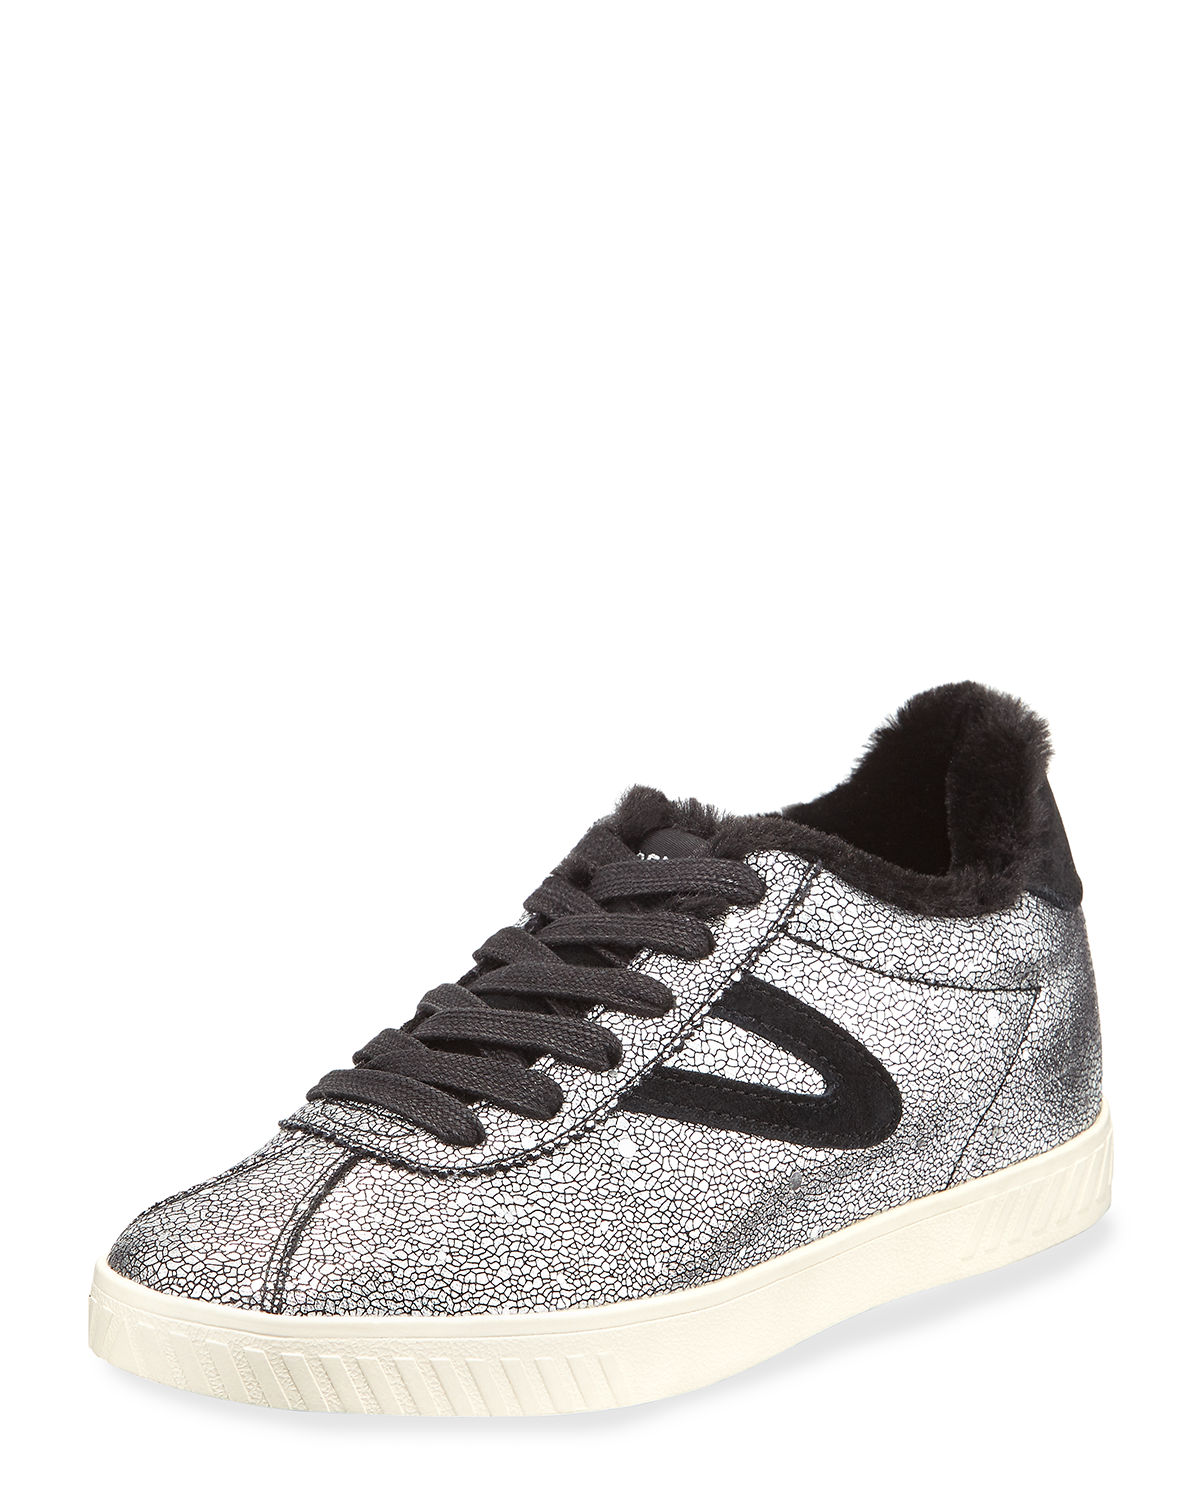 Tretorn CALLIE METALLIC LEATHER SNEAKERS